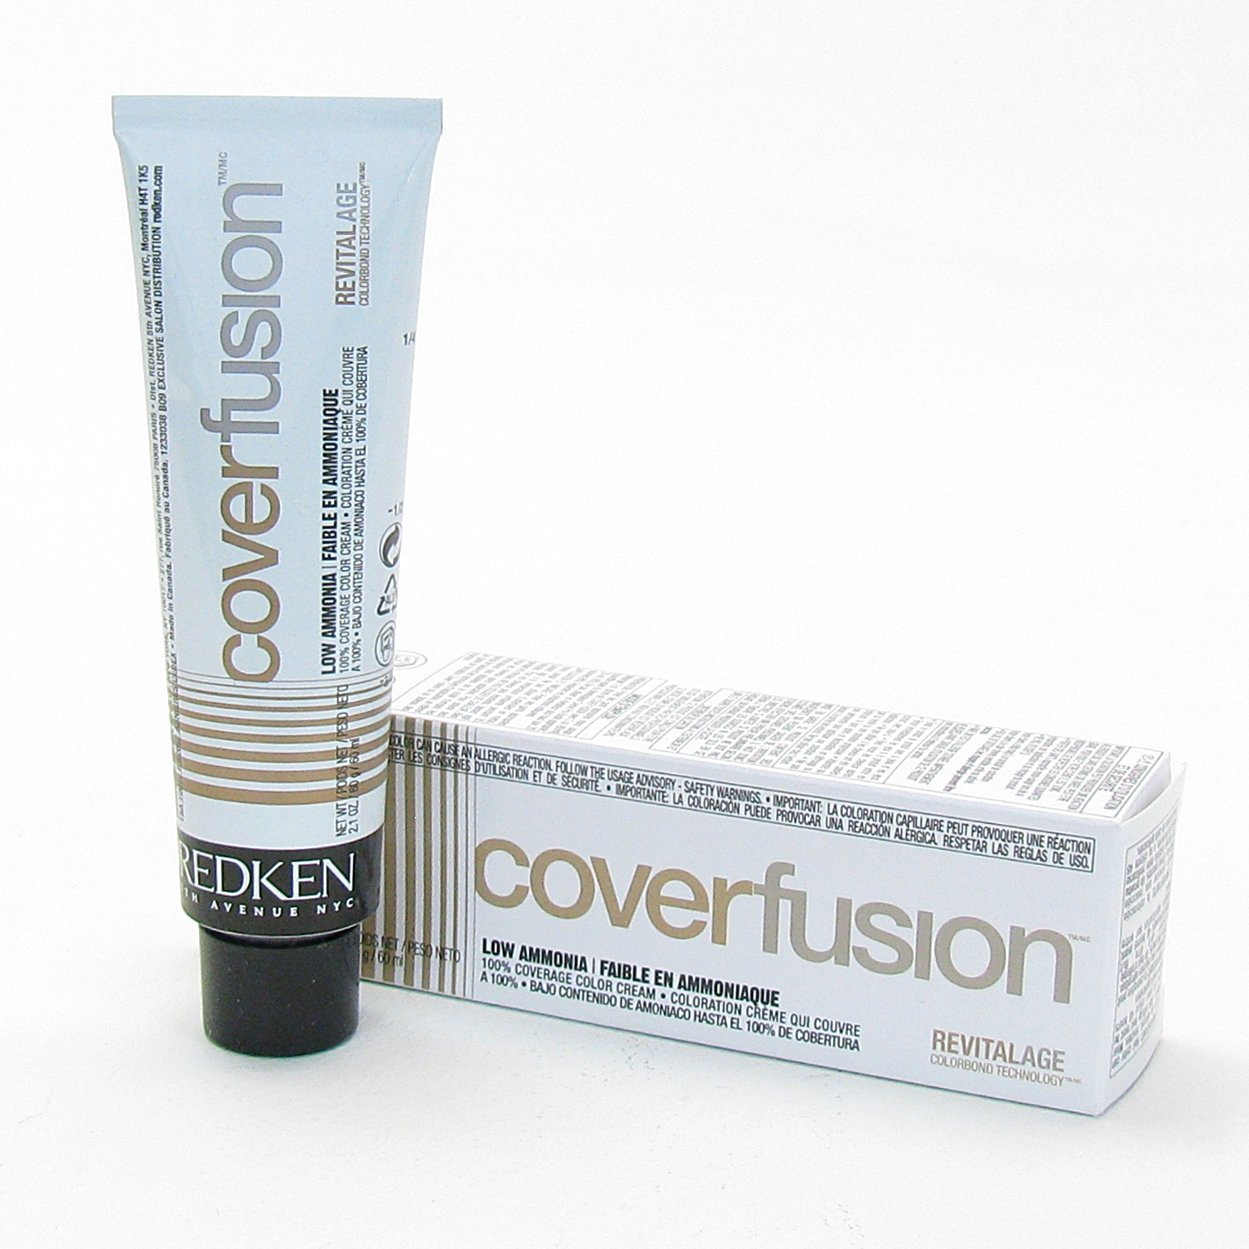 Redken Cover Fusion Low Ammonia Natural Hair Color N